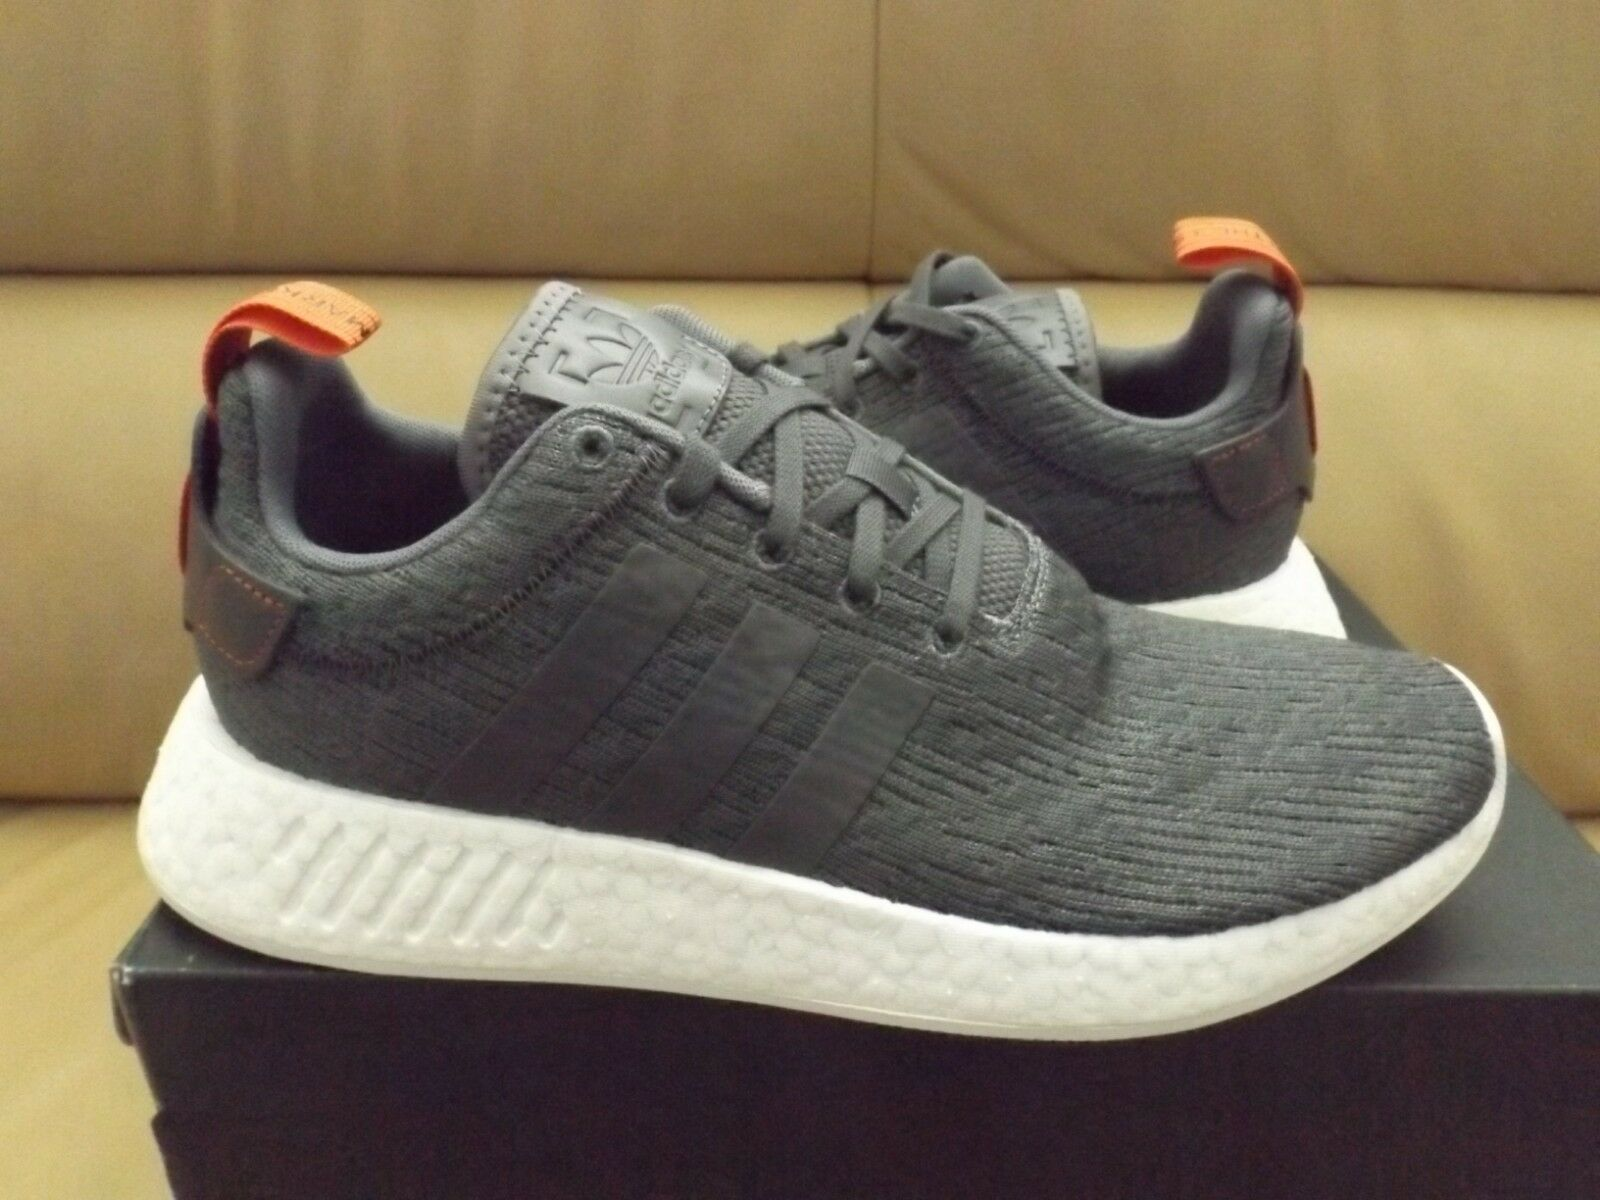 42d6e8010 Adidas NMD R2 Men s shoes Size 9.5 Grey Future Harvest Boost BY3014 (NEW)  White ndrihr7316-Athletic Shoes